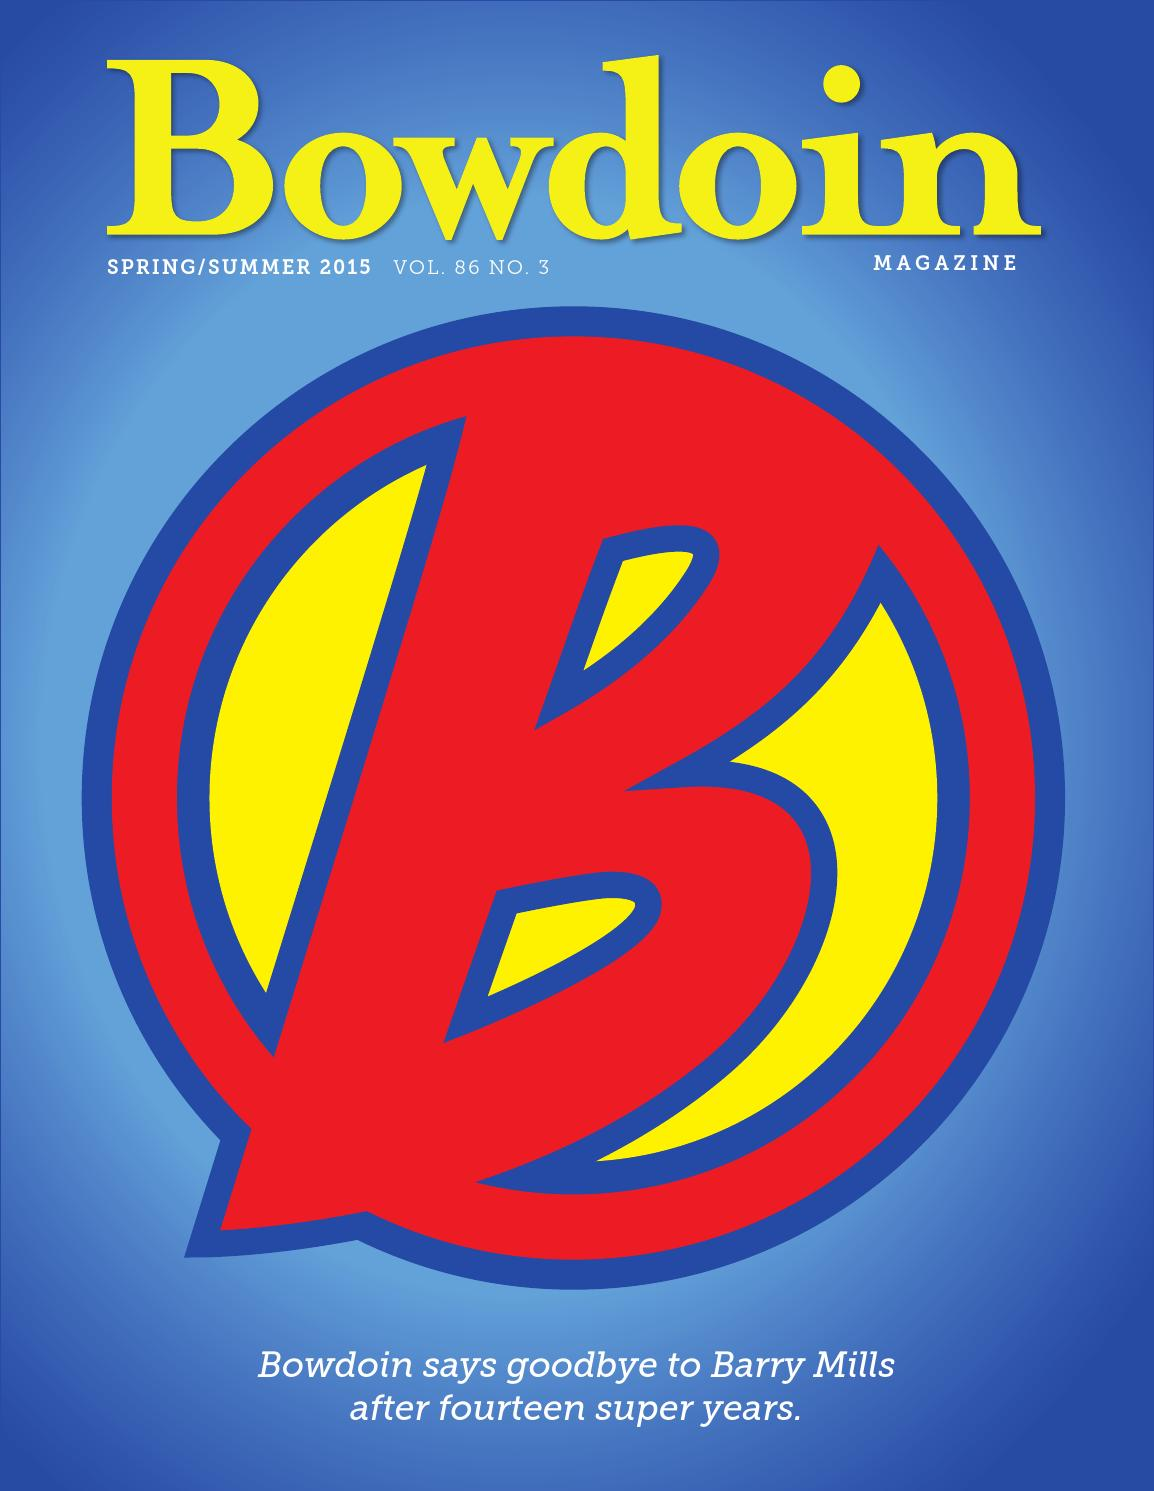 bowdoin common good essay For the supplement it asks you to reflect on your own interests and experiences, and talk about either intellectual engagement, the common good, or connection to place.